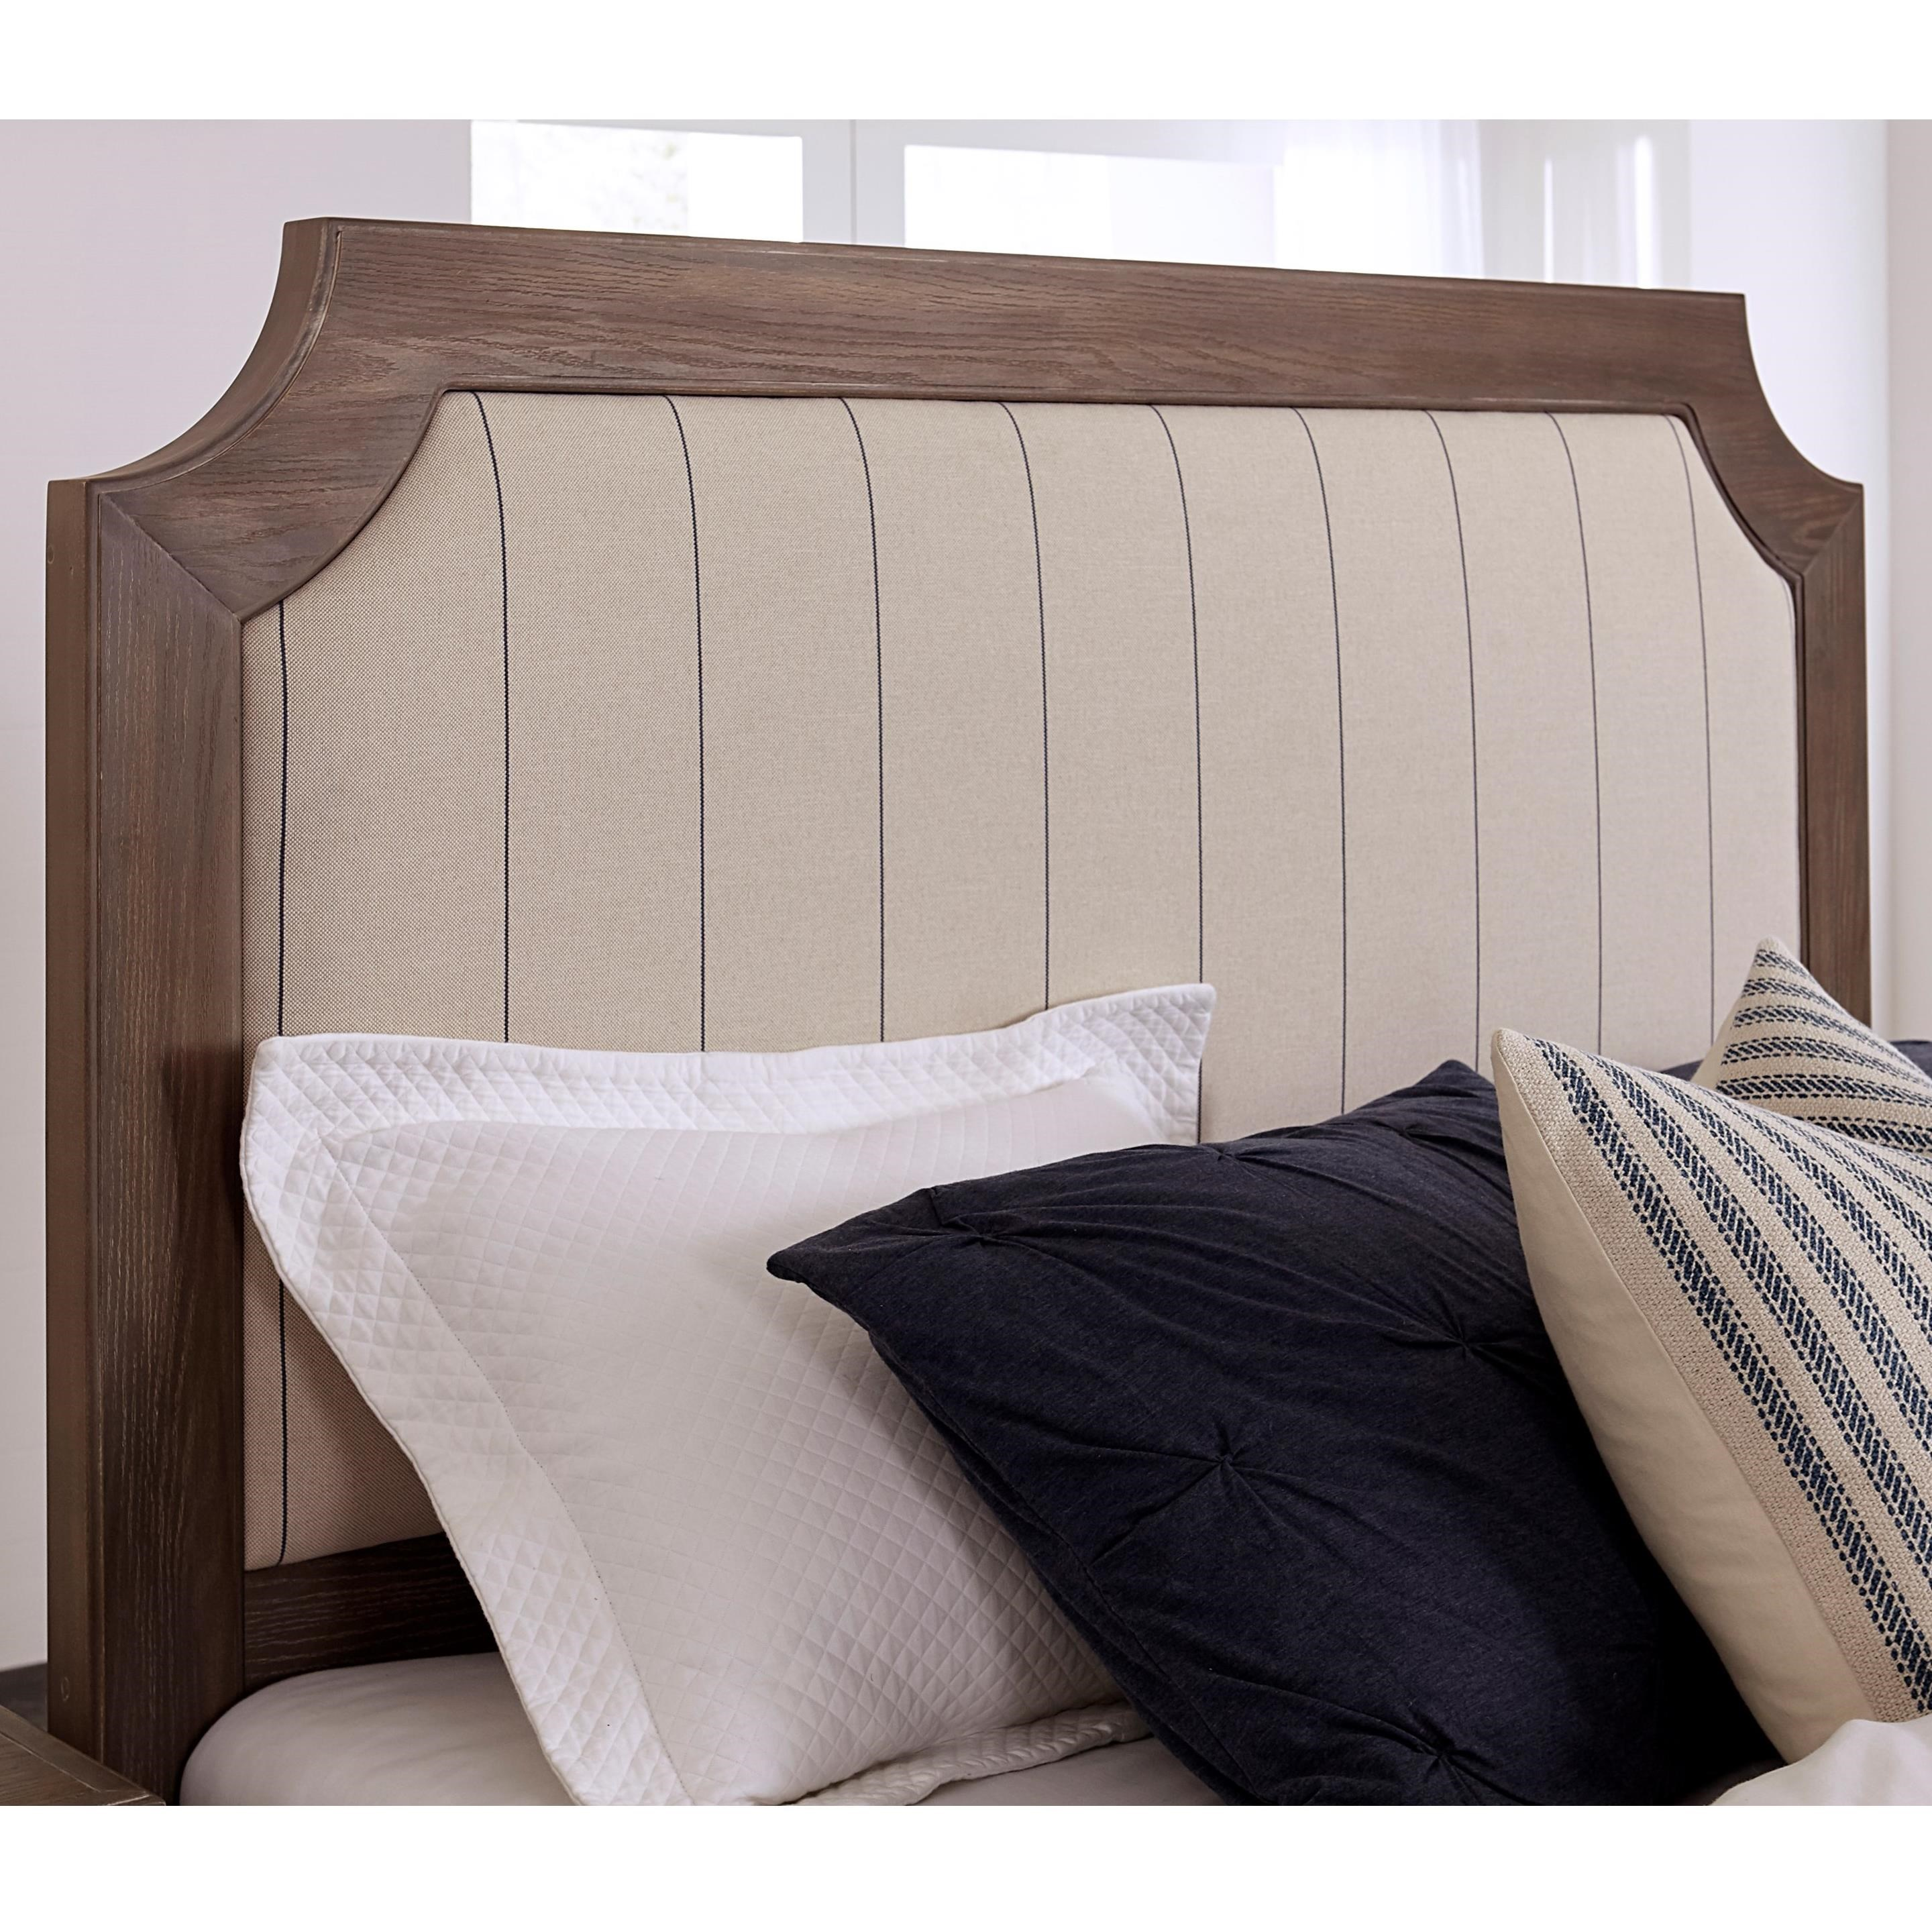 Bungalow Full Upholstered Headboard by Laurel Mercantile Co. at Johnny Janosik